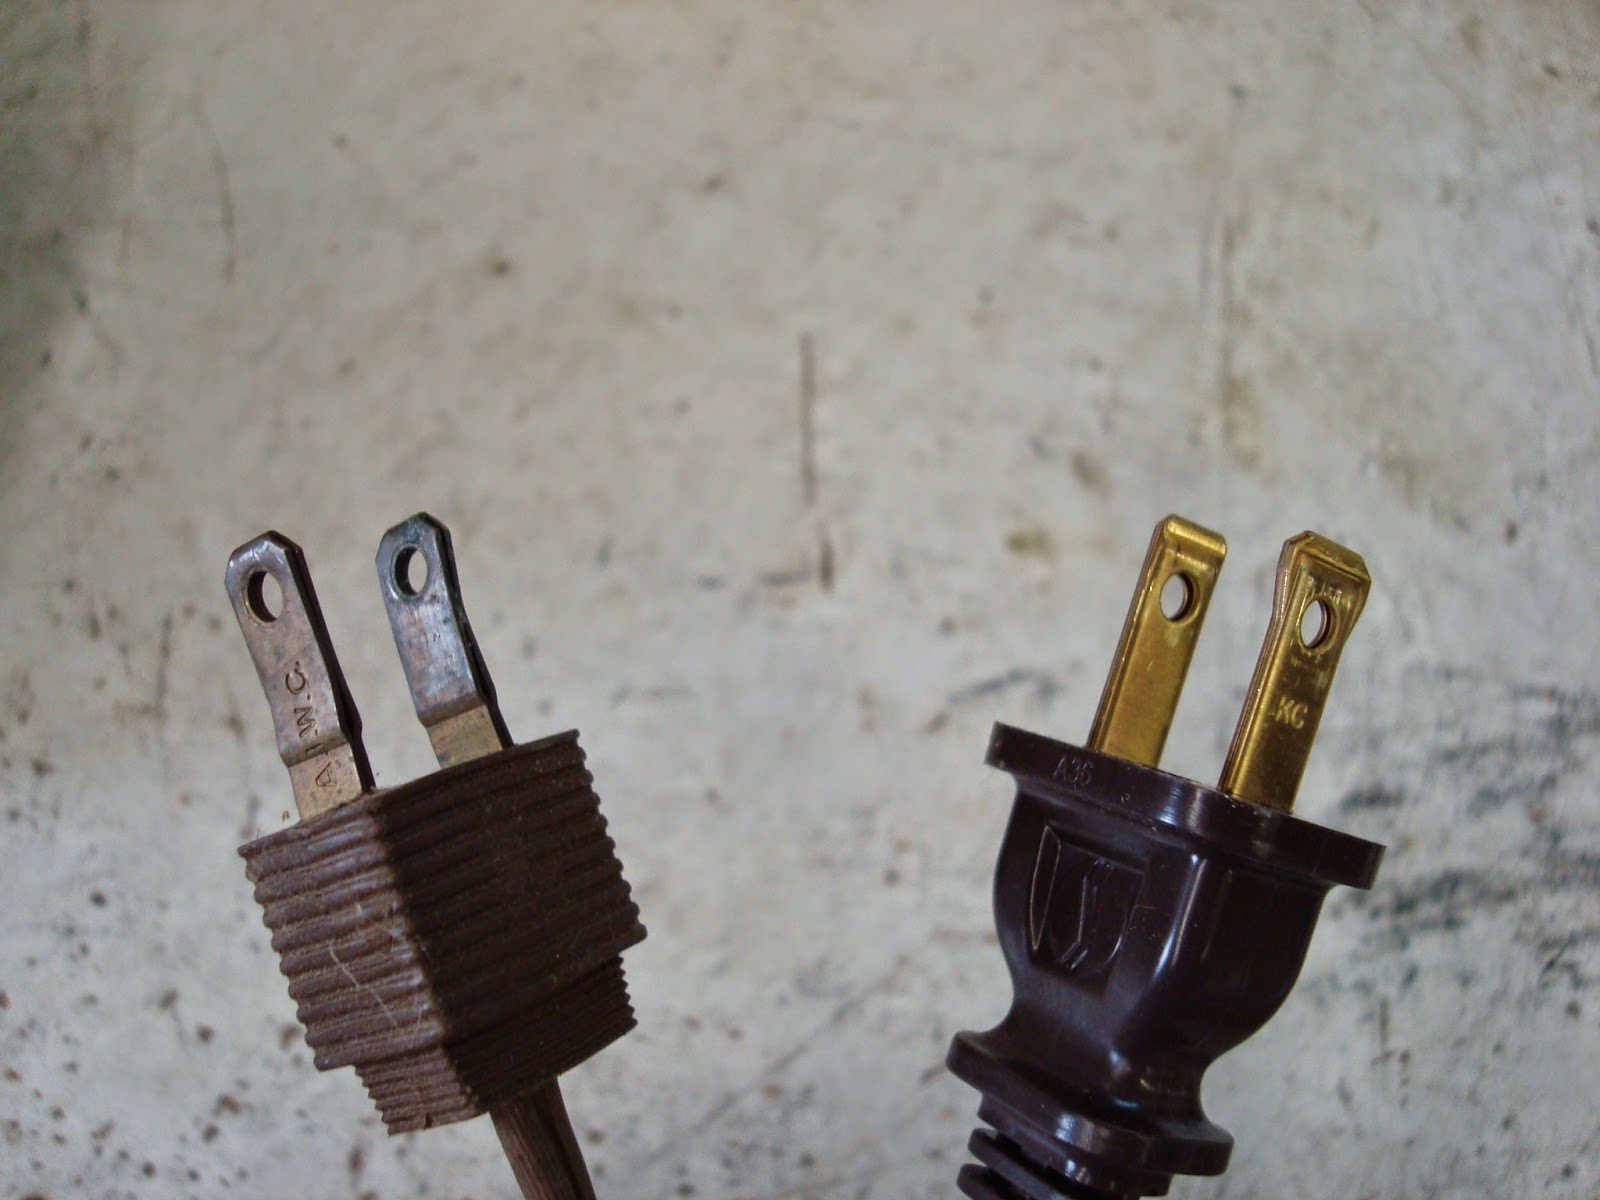 Wiring A Plug Gold And Silver